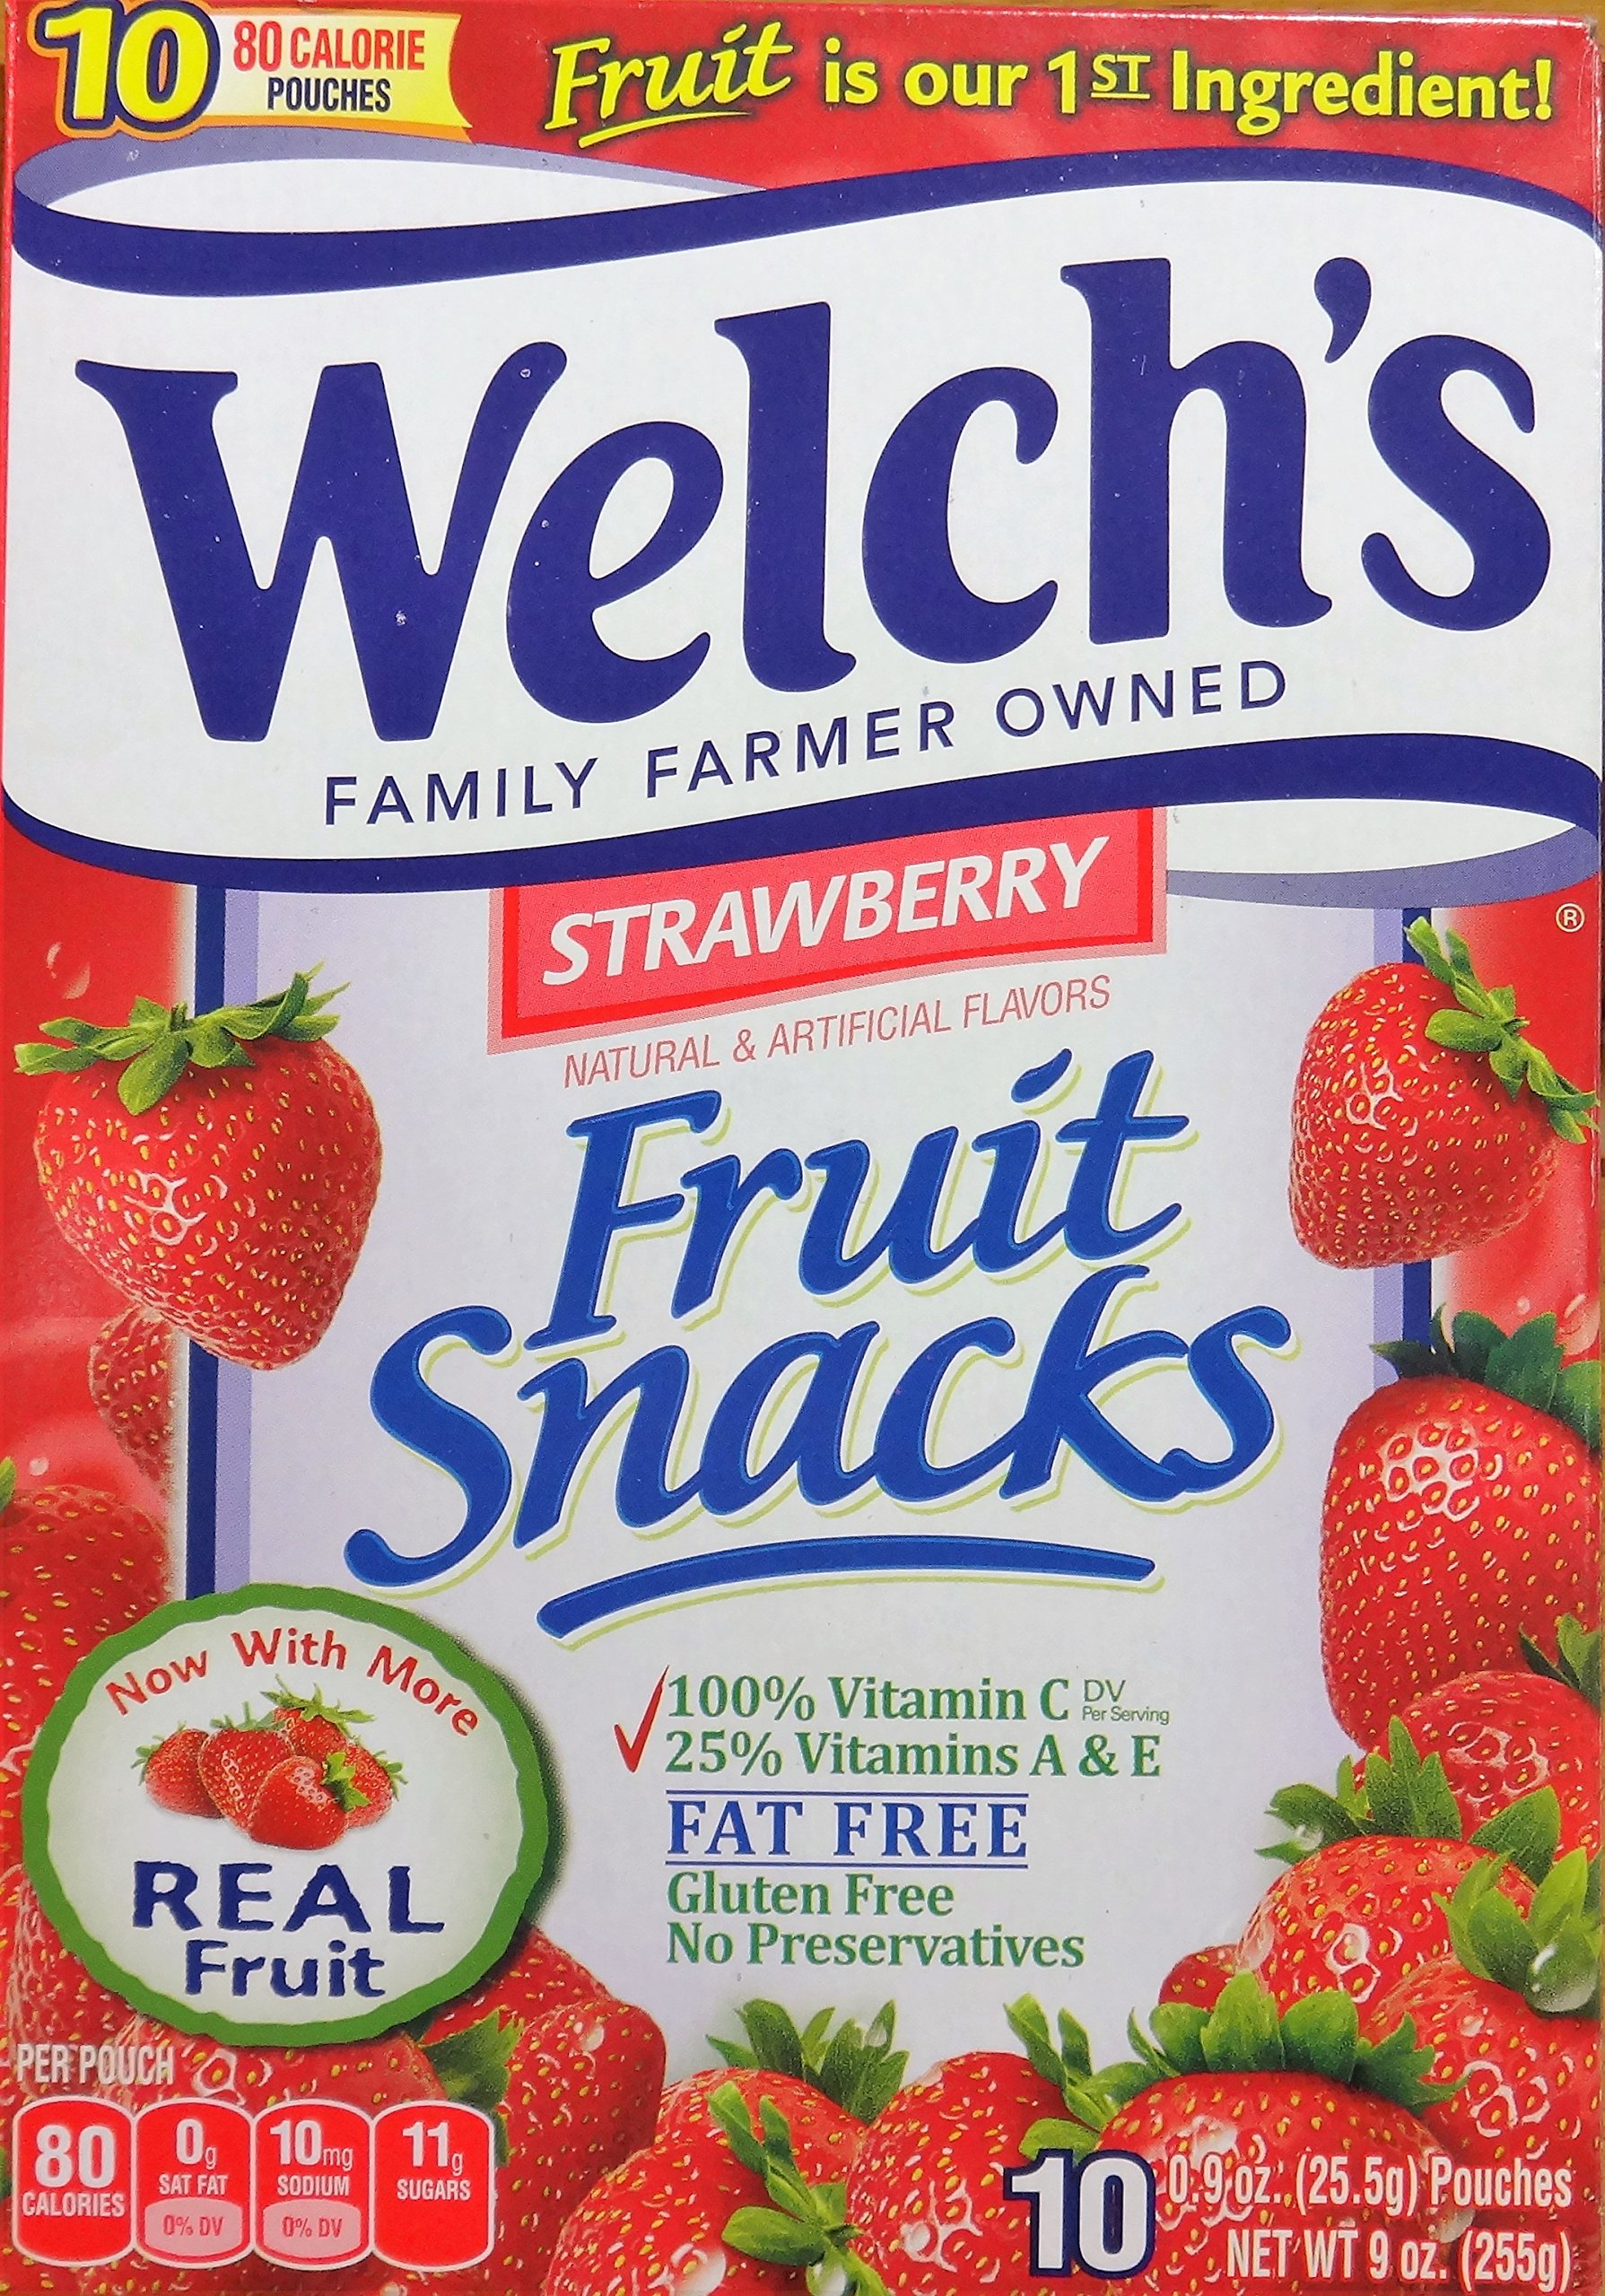 Welch's Strawberry Flavor Fruit Snacks, 10 Pouches (2 packs)